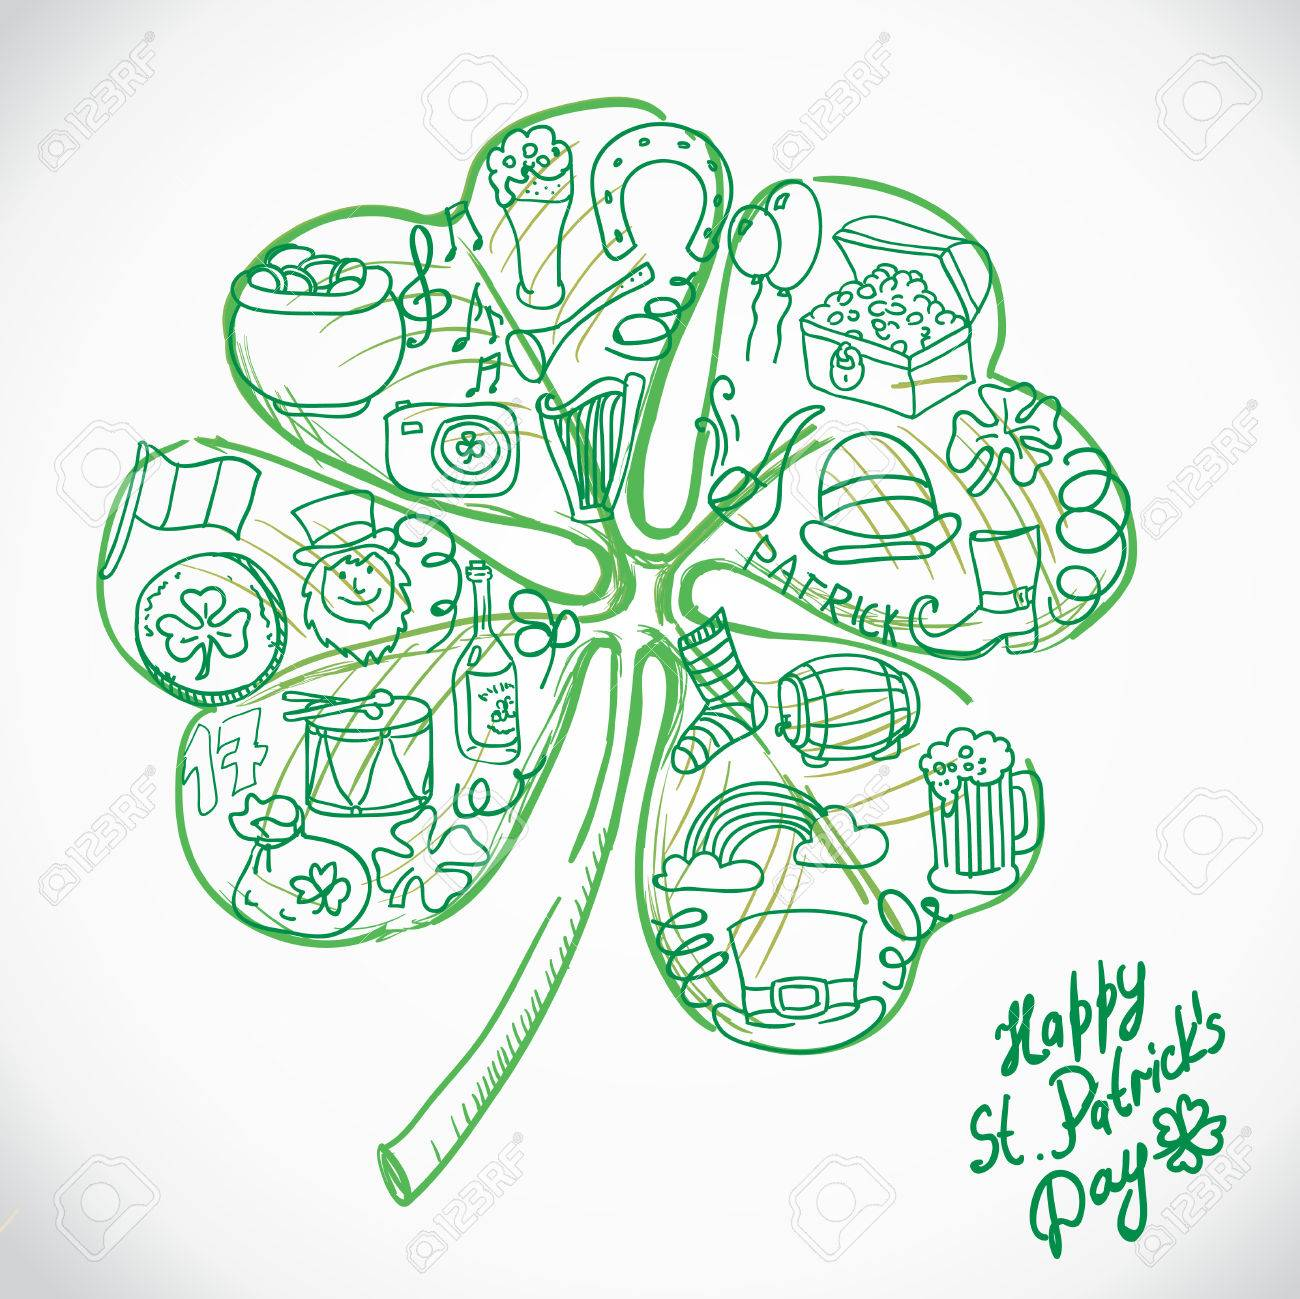 St. Patrick's greeting card. St. Patricks day with clover. Illustration Stock Vector - 26161467